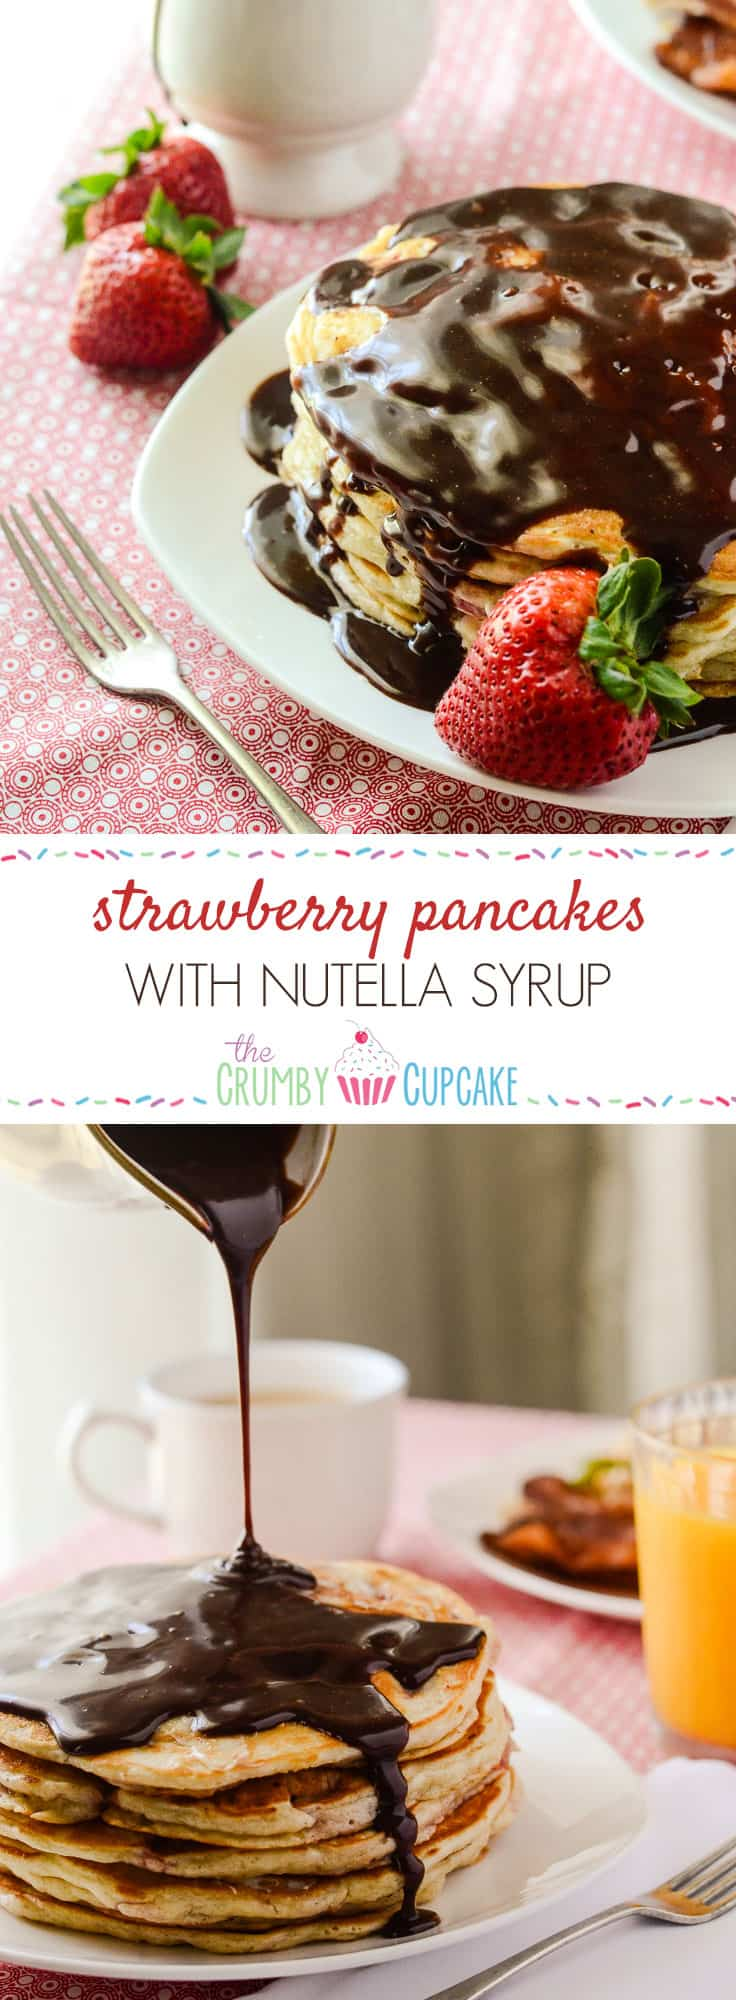 Strawberry Pancakes with Nutella Syrup | Lighten up! Skip the extra sugar and sweeten these perfect Strawberry Pancakes with Nutella Syrup, an easy recipe even your kids can whip up!